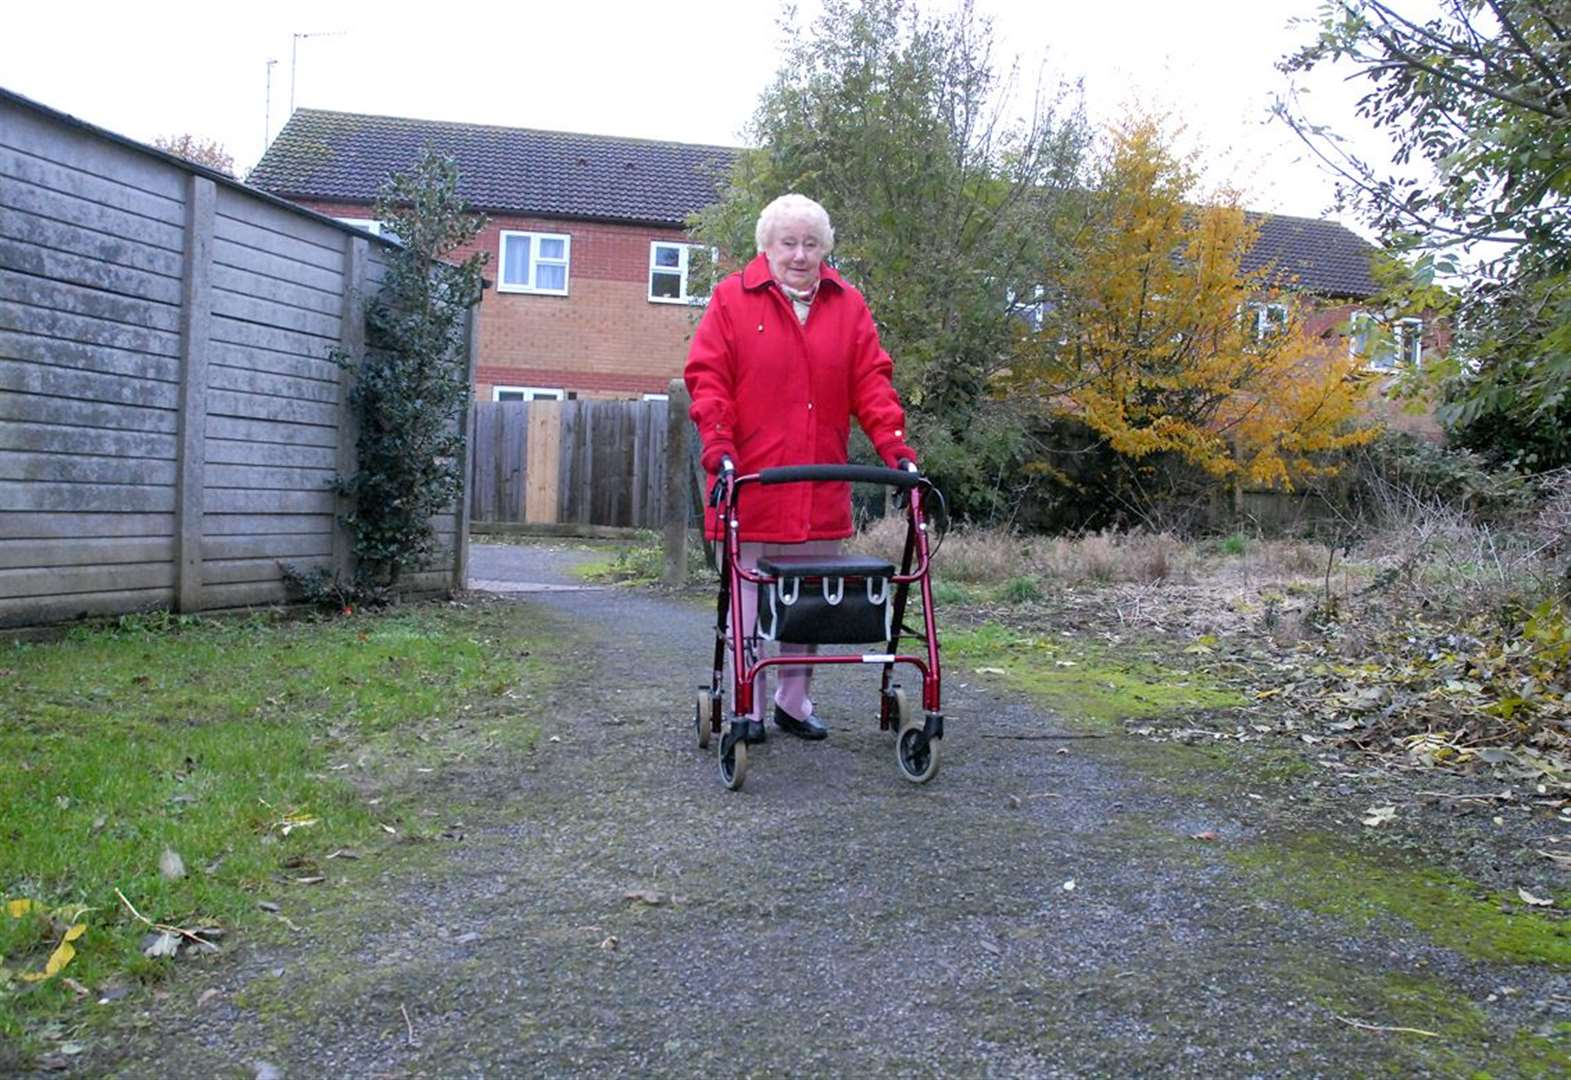 'Lane where pensioners are suffering falls must be resurfaced'